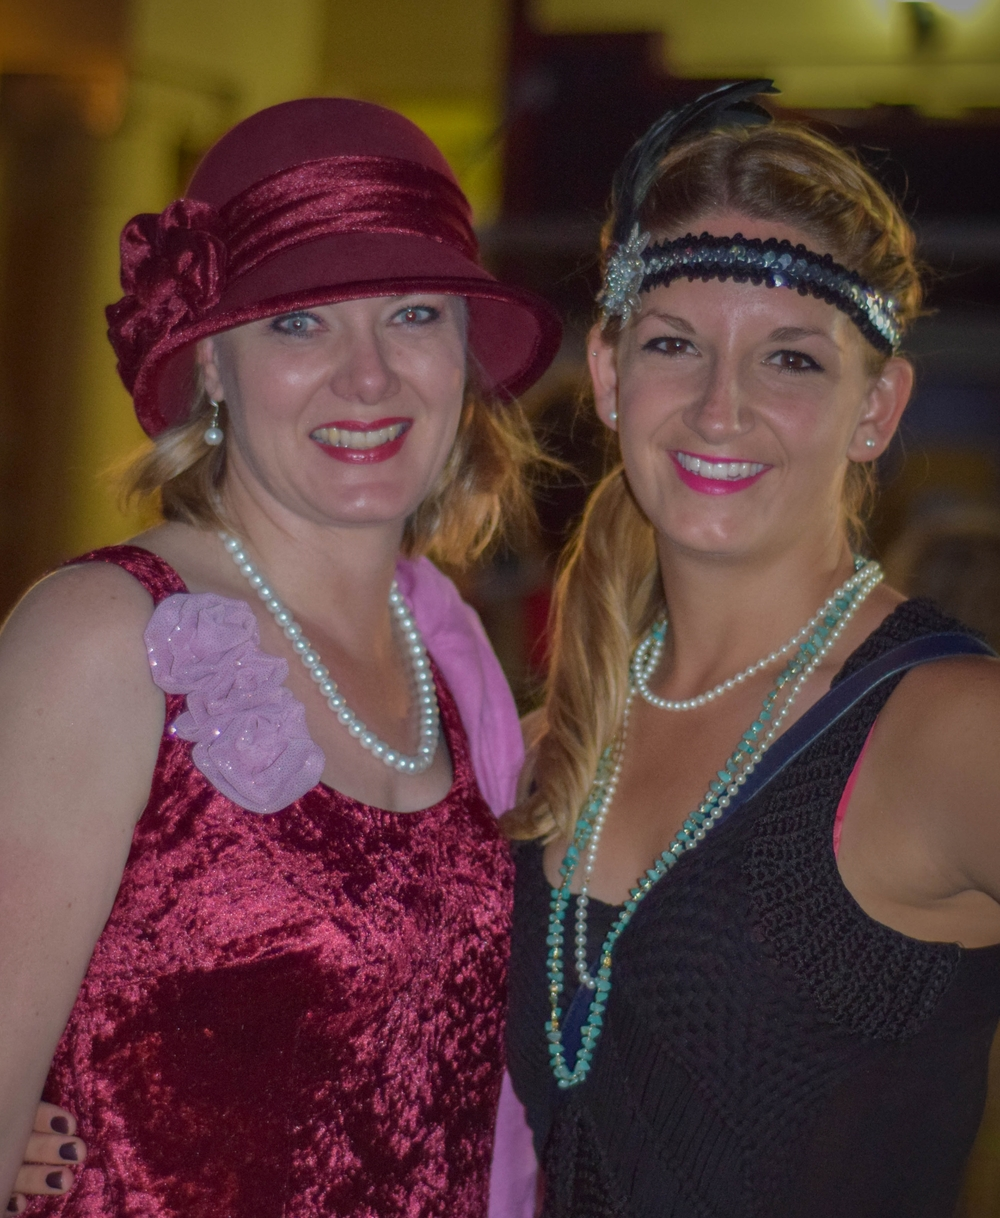 Myself and a friend in our art deco outfits - Diane made hers!